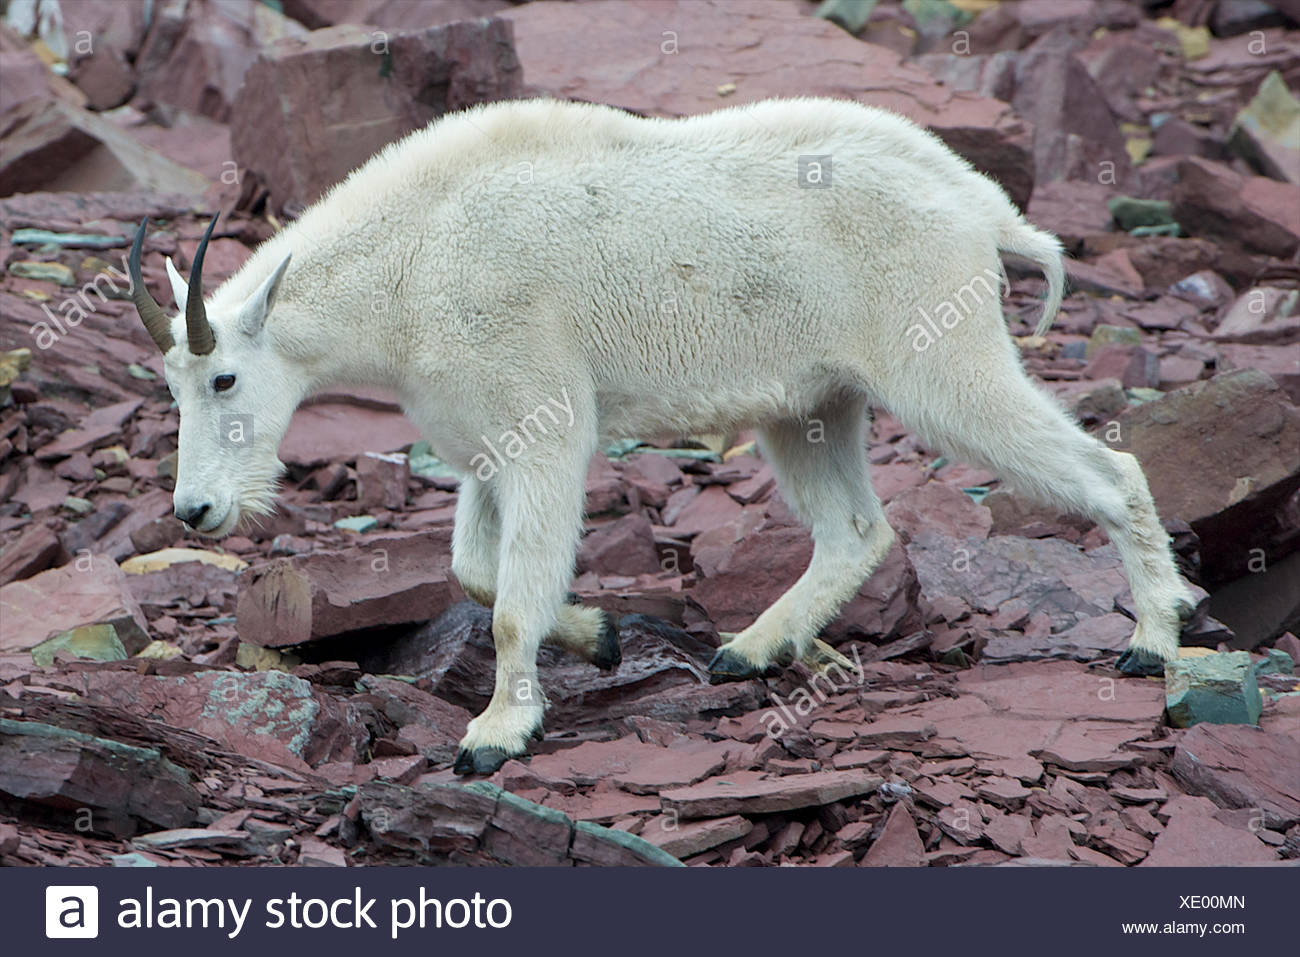 A younger mountain goat walks on maroon rocks. - Stock Image